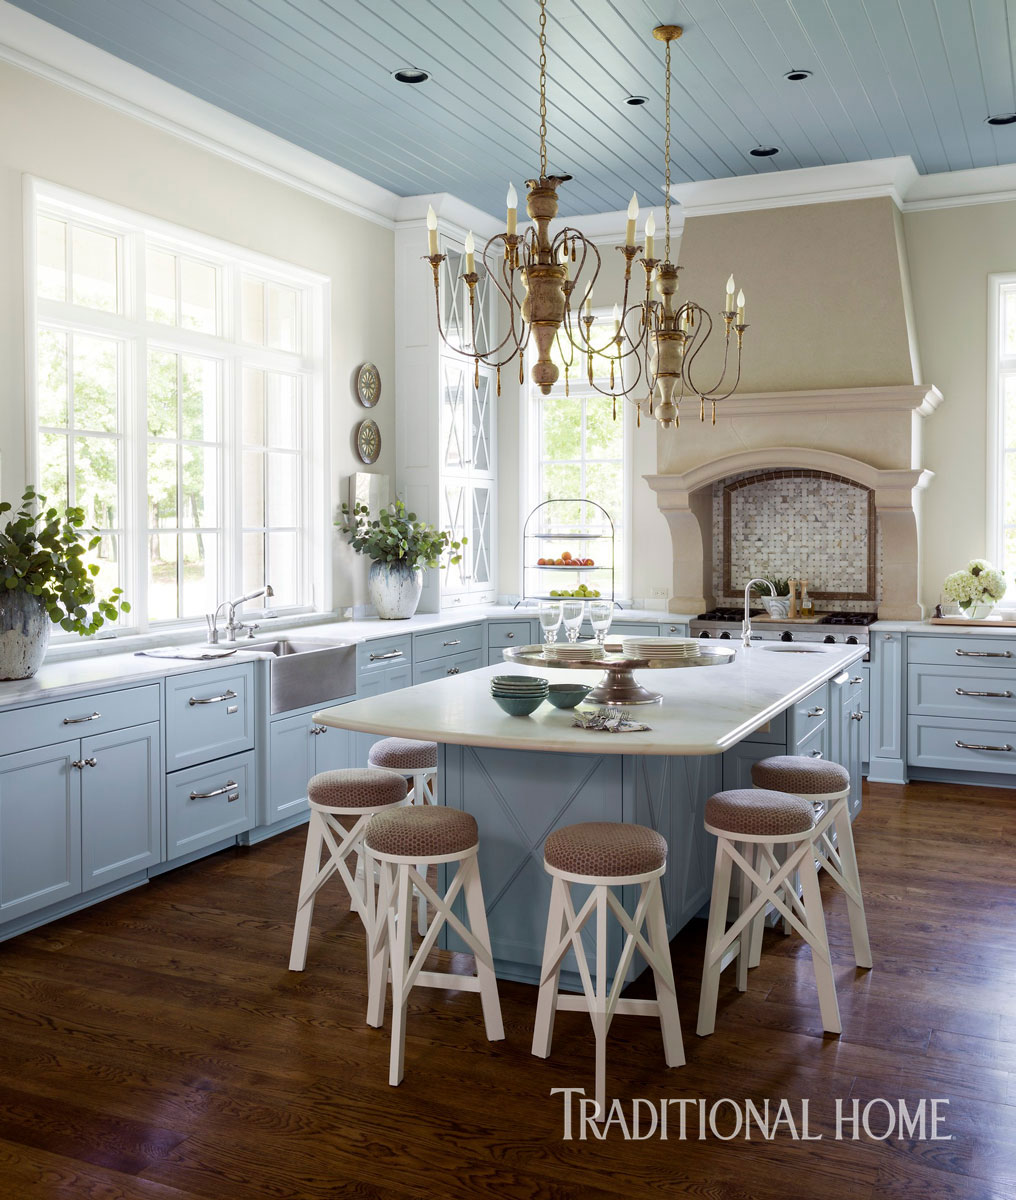 Dream Kitchens And Baths Magazine